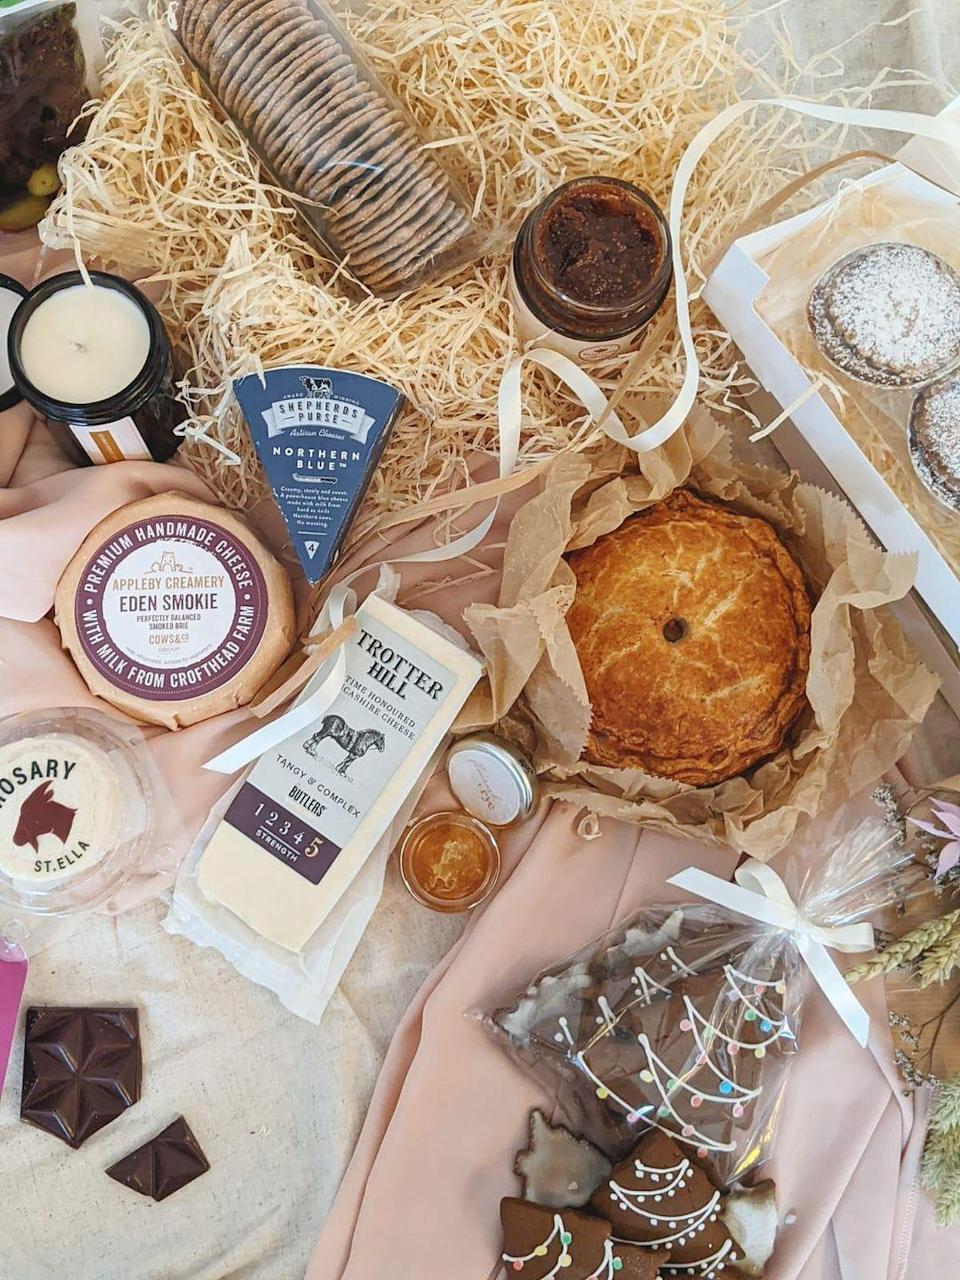 """<p>Flourish + Rye's 'So this is Christmas' hamper, designed to serve four to six people, is filled with everything you need for the perfect festive cheeseboard. Enjoy Northern Blue Shepherds Purse, Smokey Eden Brie and Yorkshire Coppa, alongside chutneys, crackers and olives. Plus, you'll enjoy hand-made treats including six boozy clementine mince pies, spiced ginger biscuits and a chicken, bacon and chestnut Christmas pie. With goods hand-selected from small-scale producers and artisans from across the UK, this is the ultimate foodie festive treat. AD</p><p>£130 including next-day delivery, <a href=""""http://www.flourishandrye.co.uk"""" rel=""""nofollow noopener"""" target=""""_blank"""" data-ylk=""""slk:Flourish and Rye"""" class=""""link rapid-noclick-resp"""">Flourish and Rye</a></p>"""